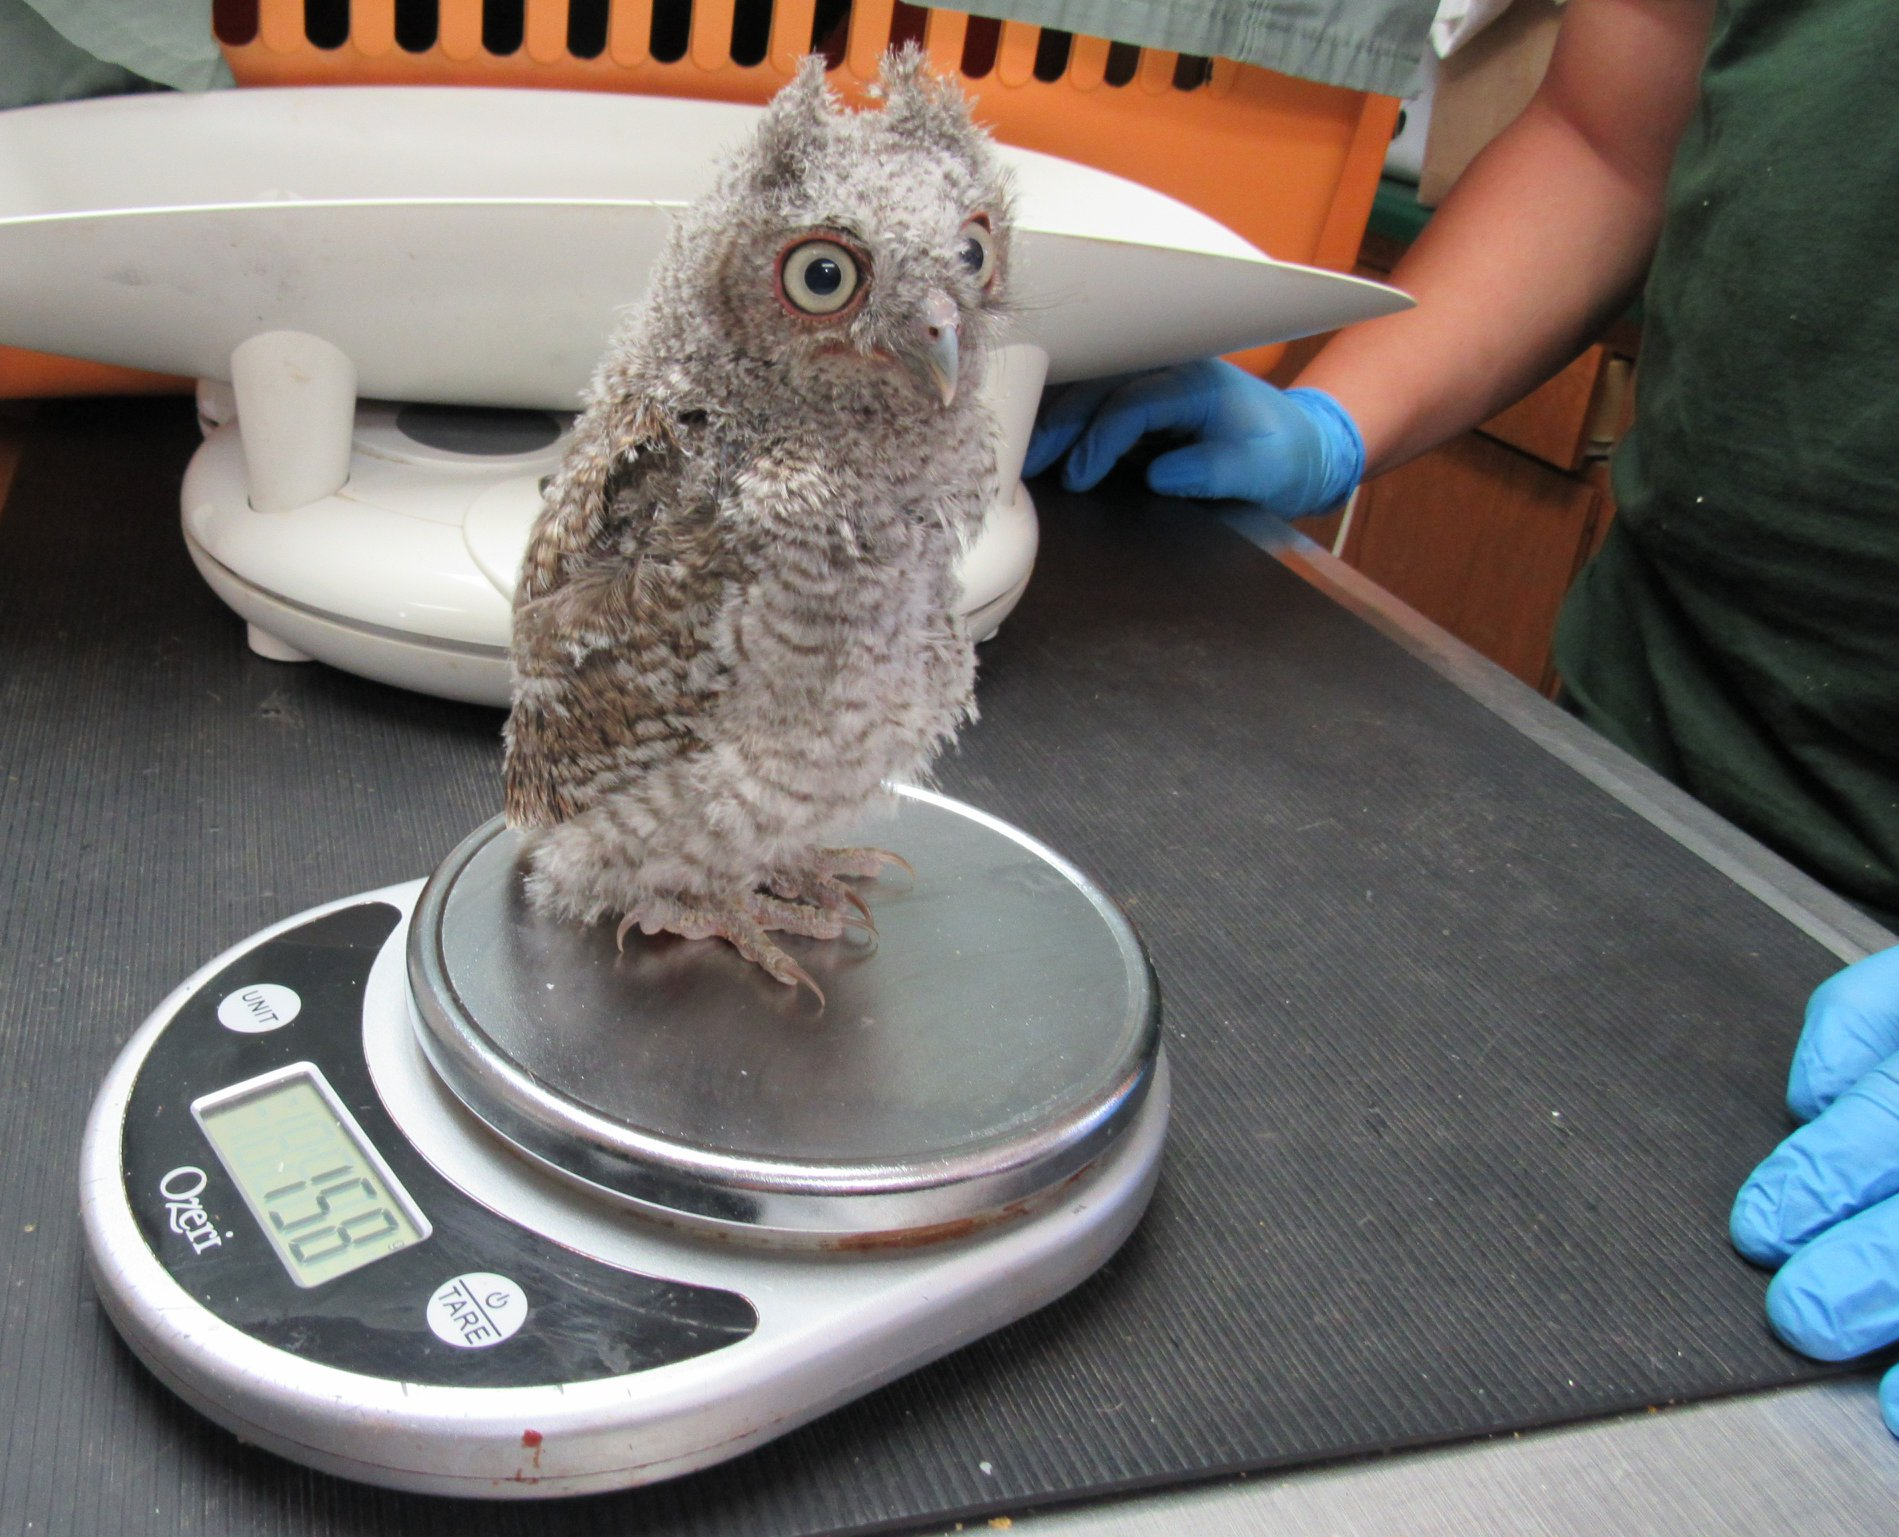 One of two tiny Screech owls being raised at REGI.